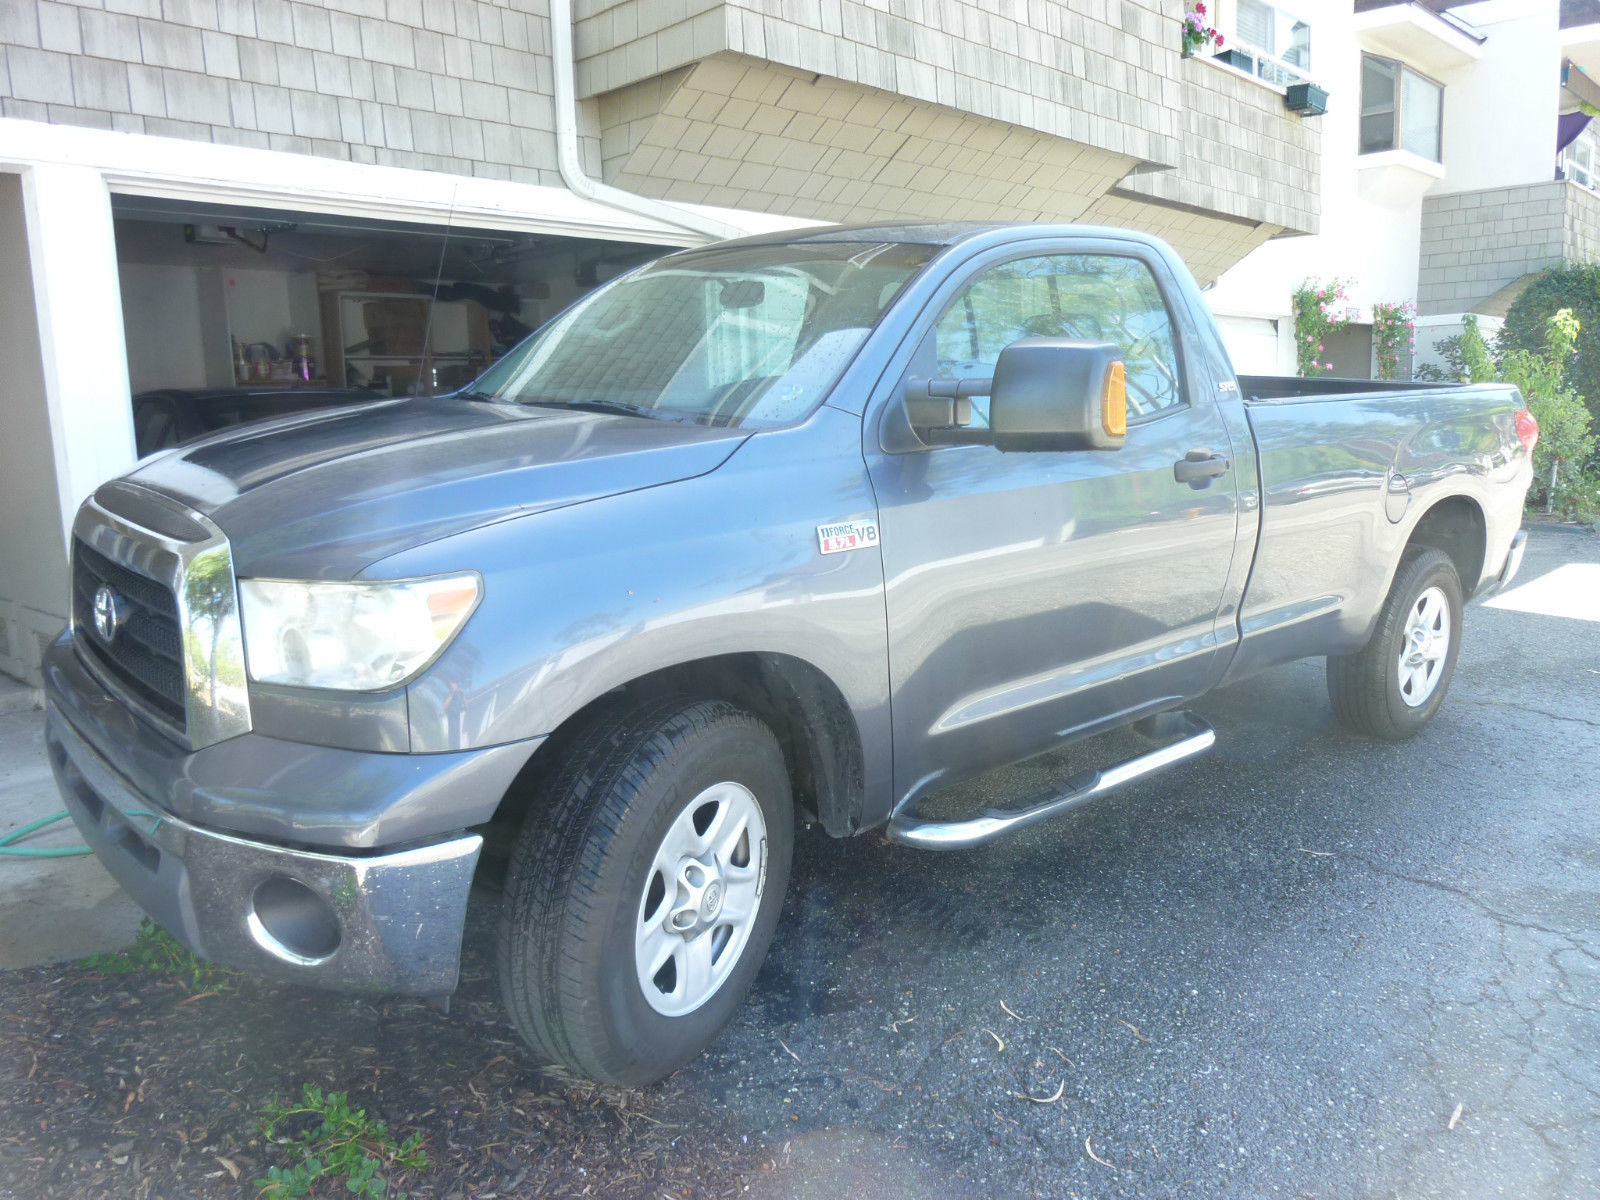 Tundra Towing Capacity >> 2007 Toyota Tundra SR5 Standard Cab Pickup 2 Door V8 5.7L for sale